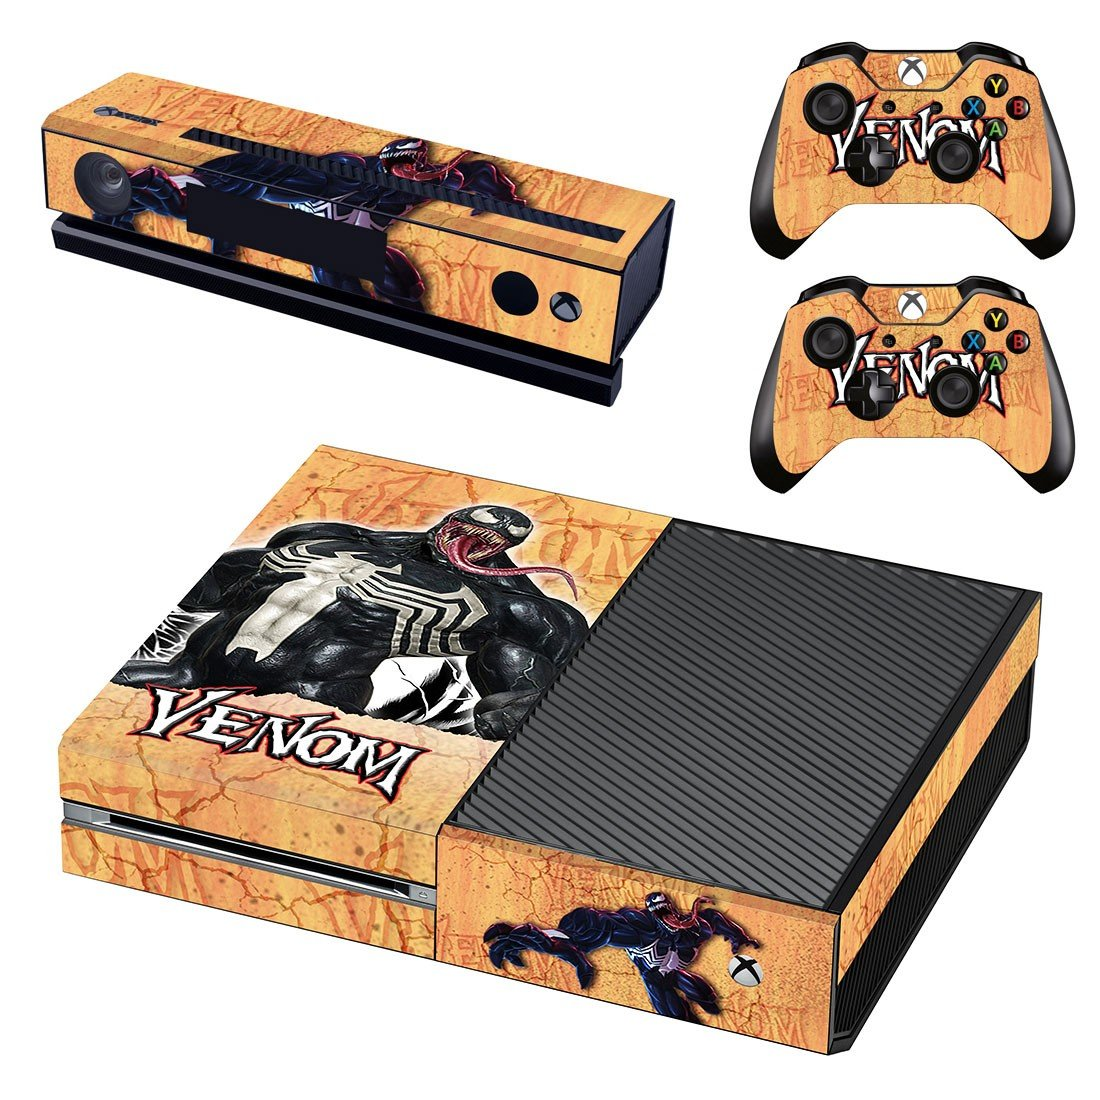 Venom decal skin sticker for Xbox One console and controllers